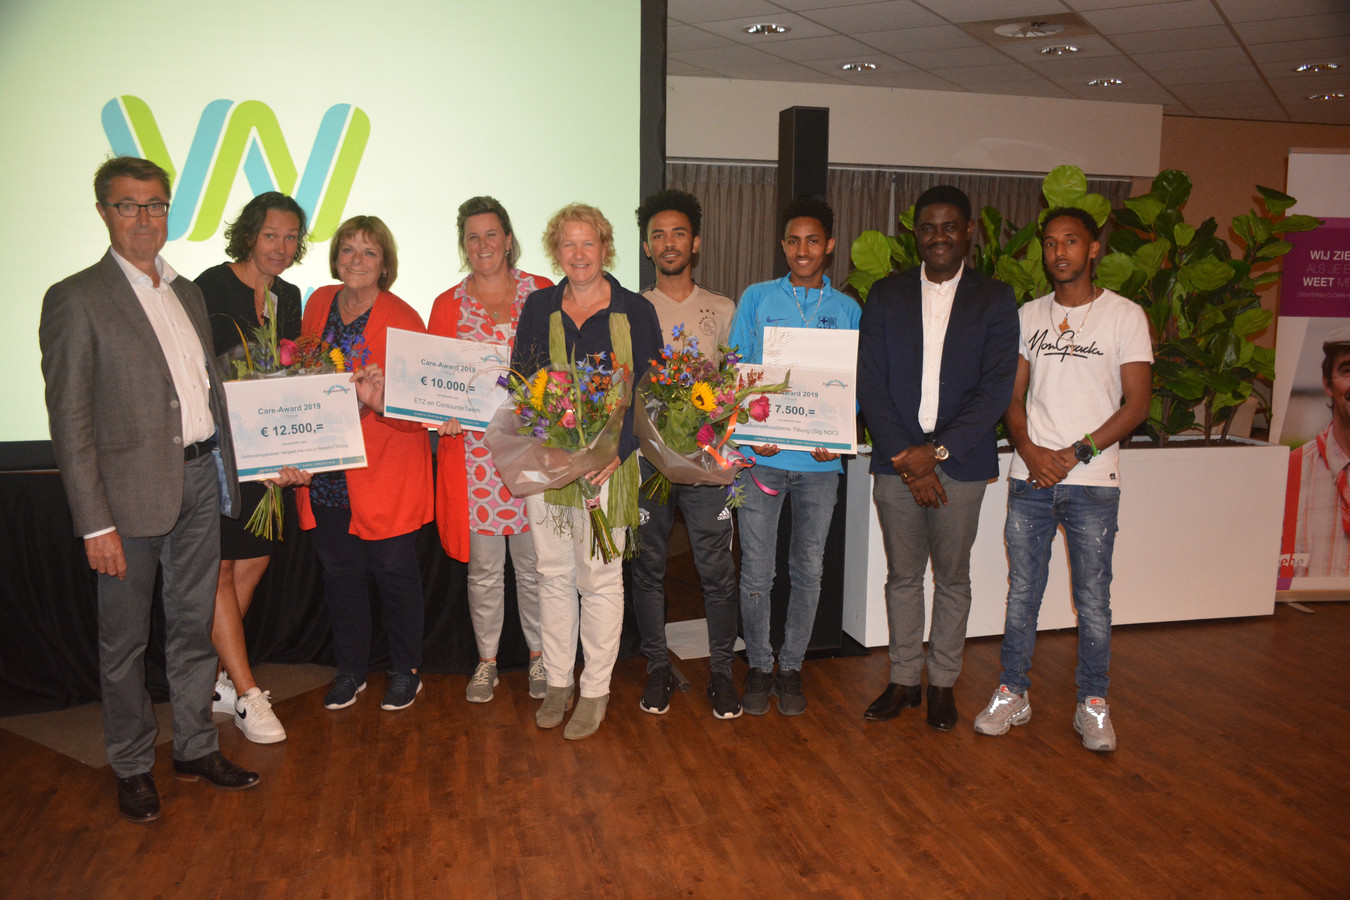 De winnaars van de Bergmansfonds Care-Award.